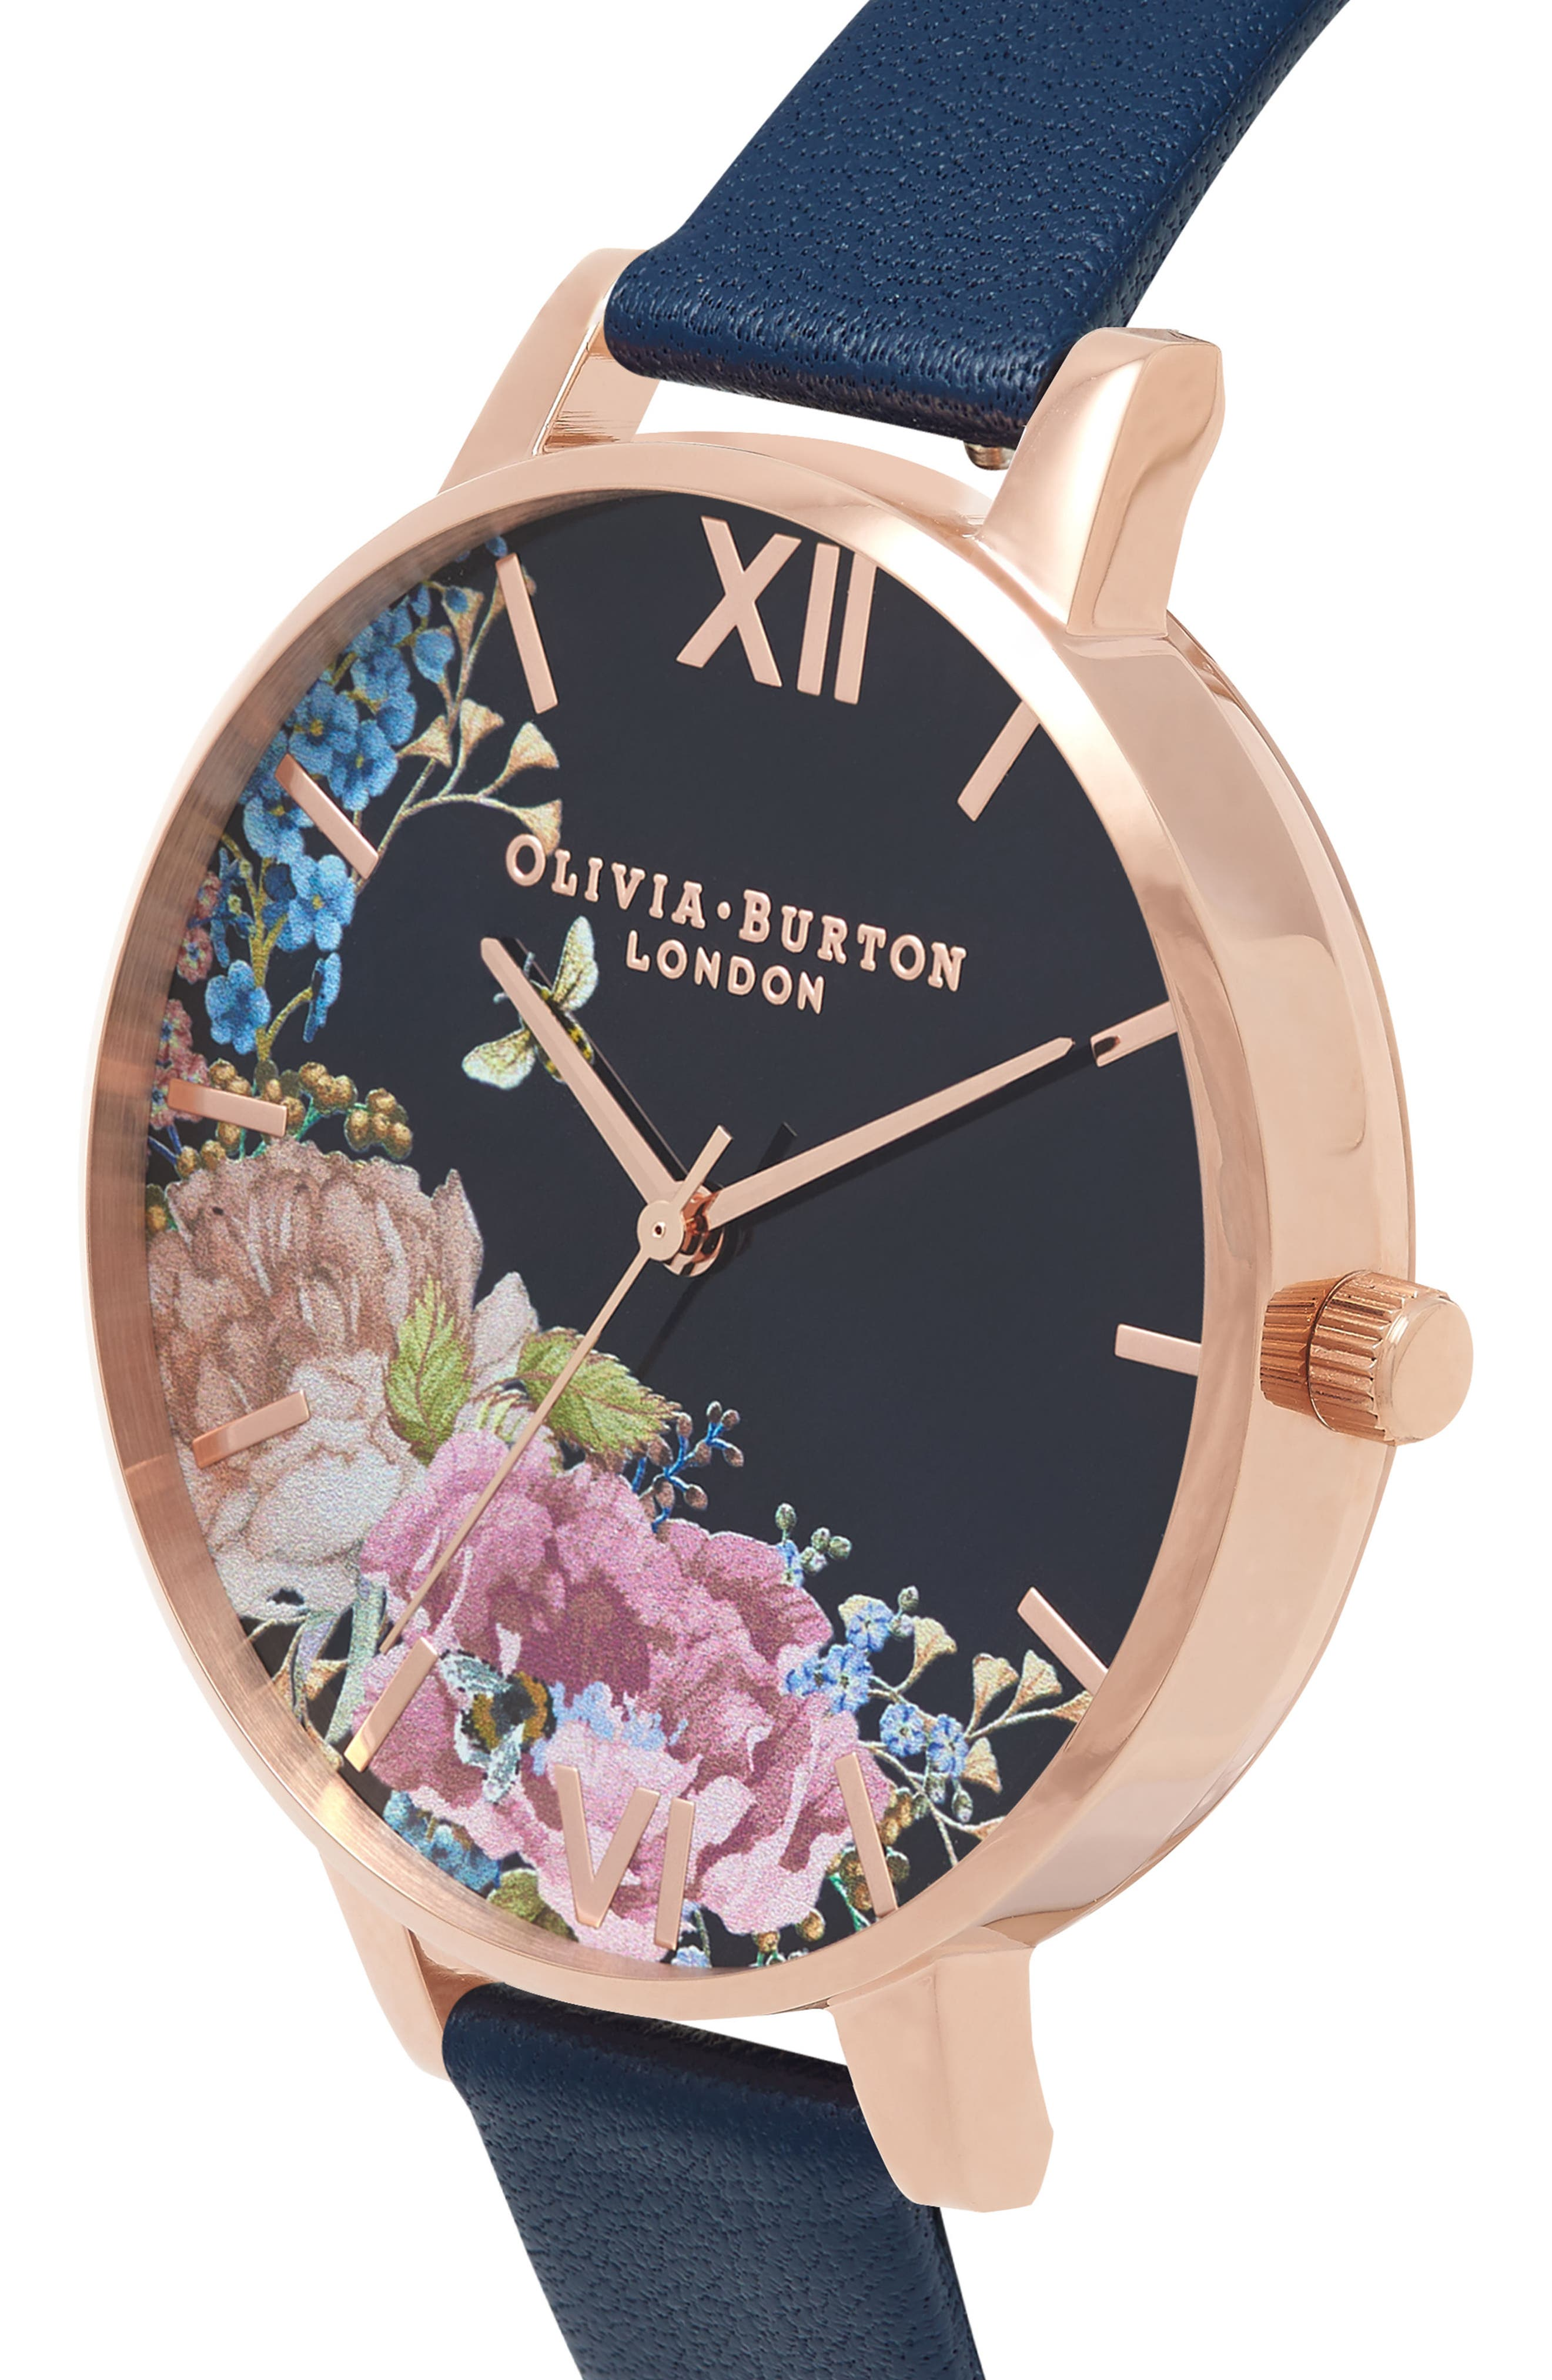 Enchanted Garden Leather Strap Watch, 38mm,                             Alternate thumbnail 3, color,                             NAVY/ FLORAL/ ROSE GOLD